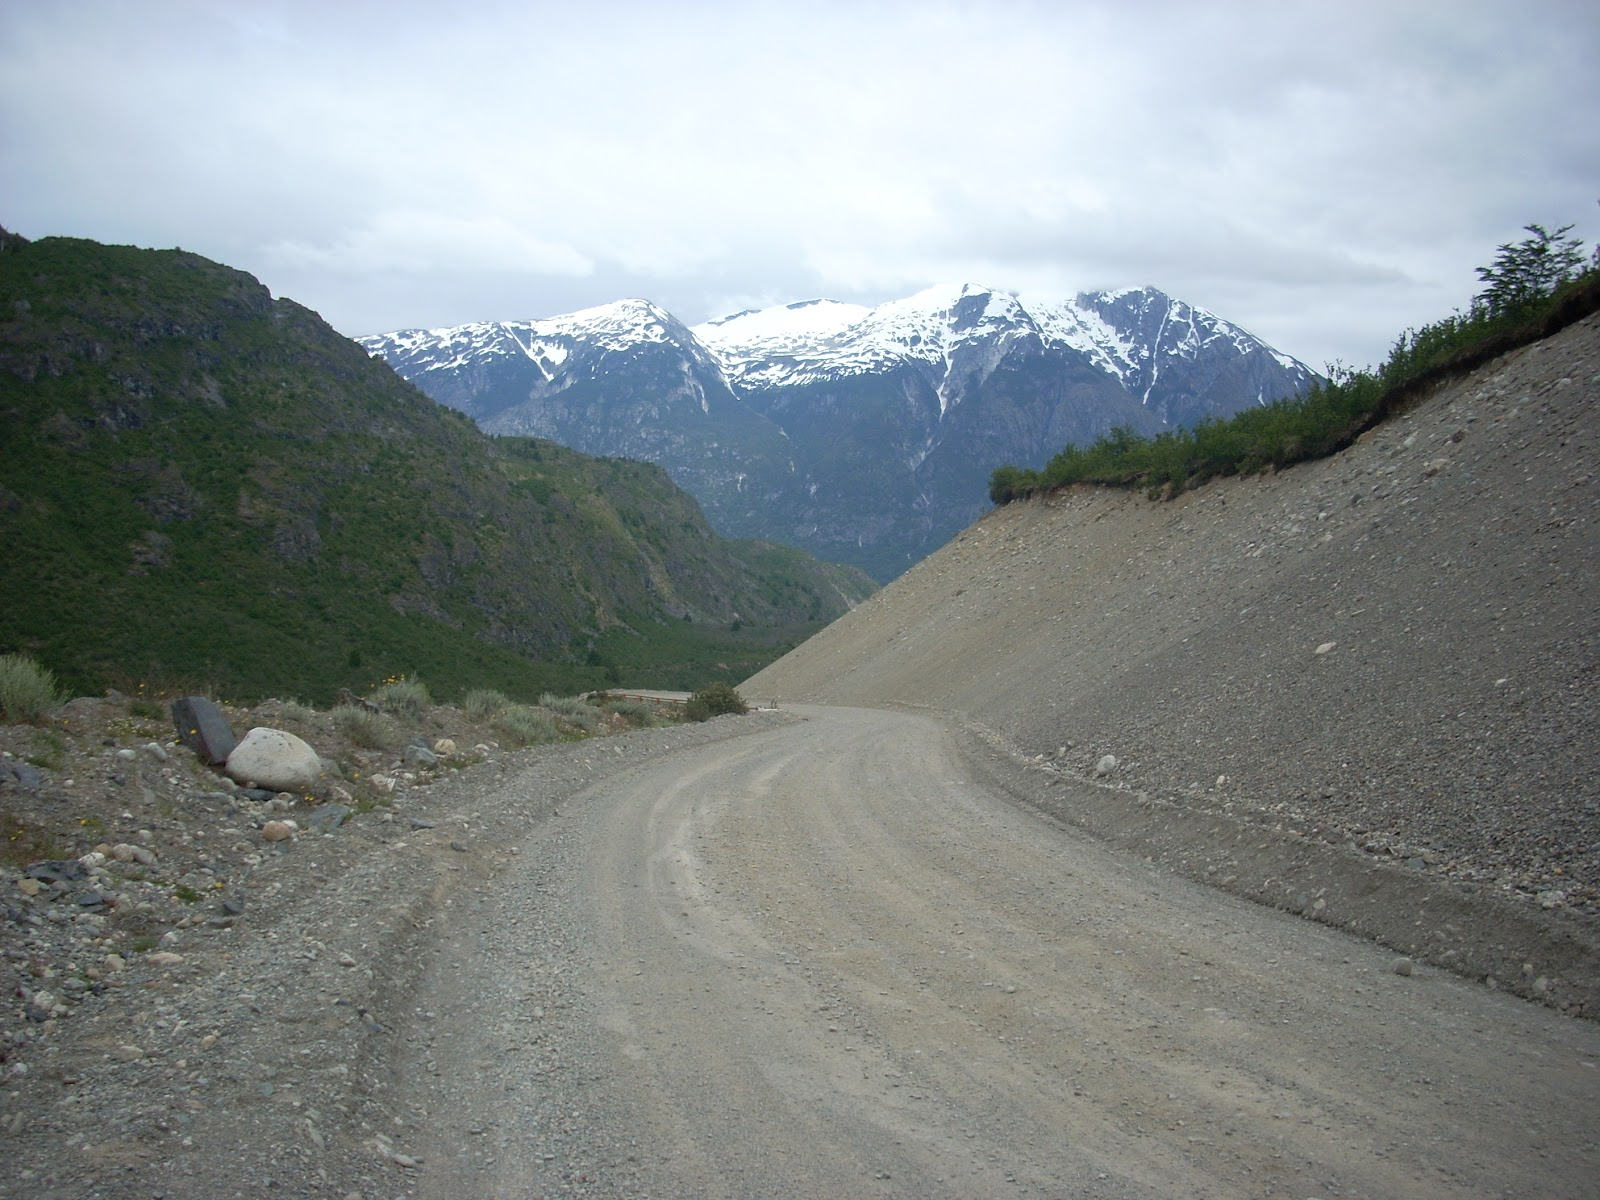 Gravel roads, and mountains too